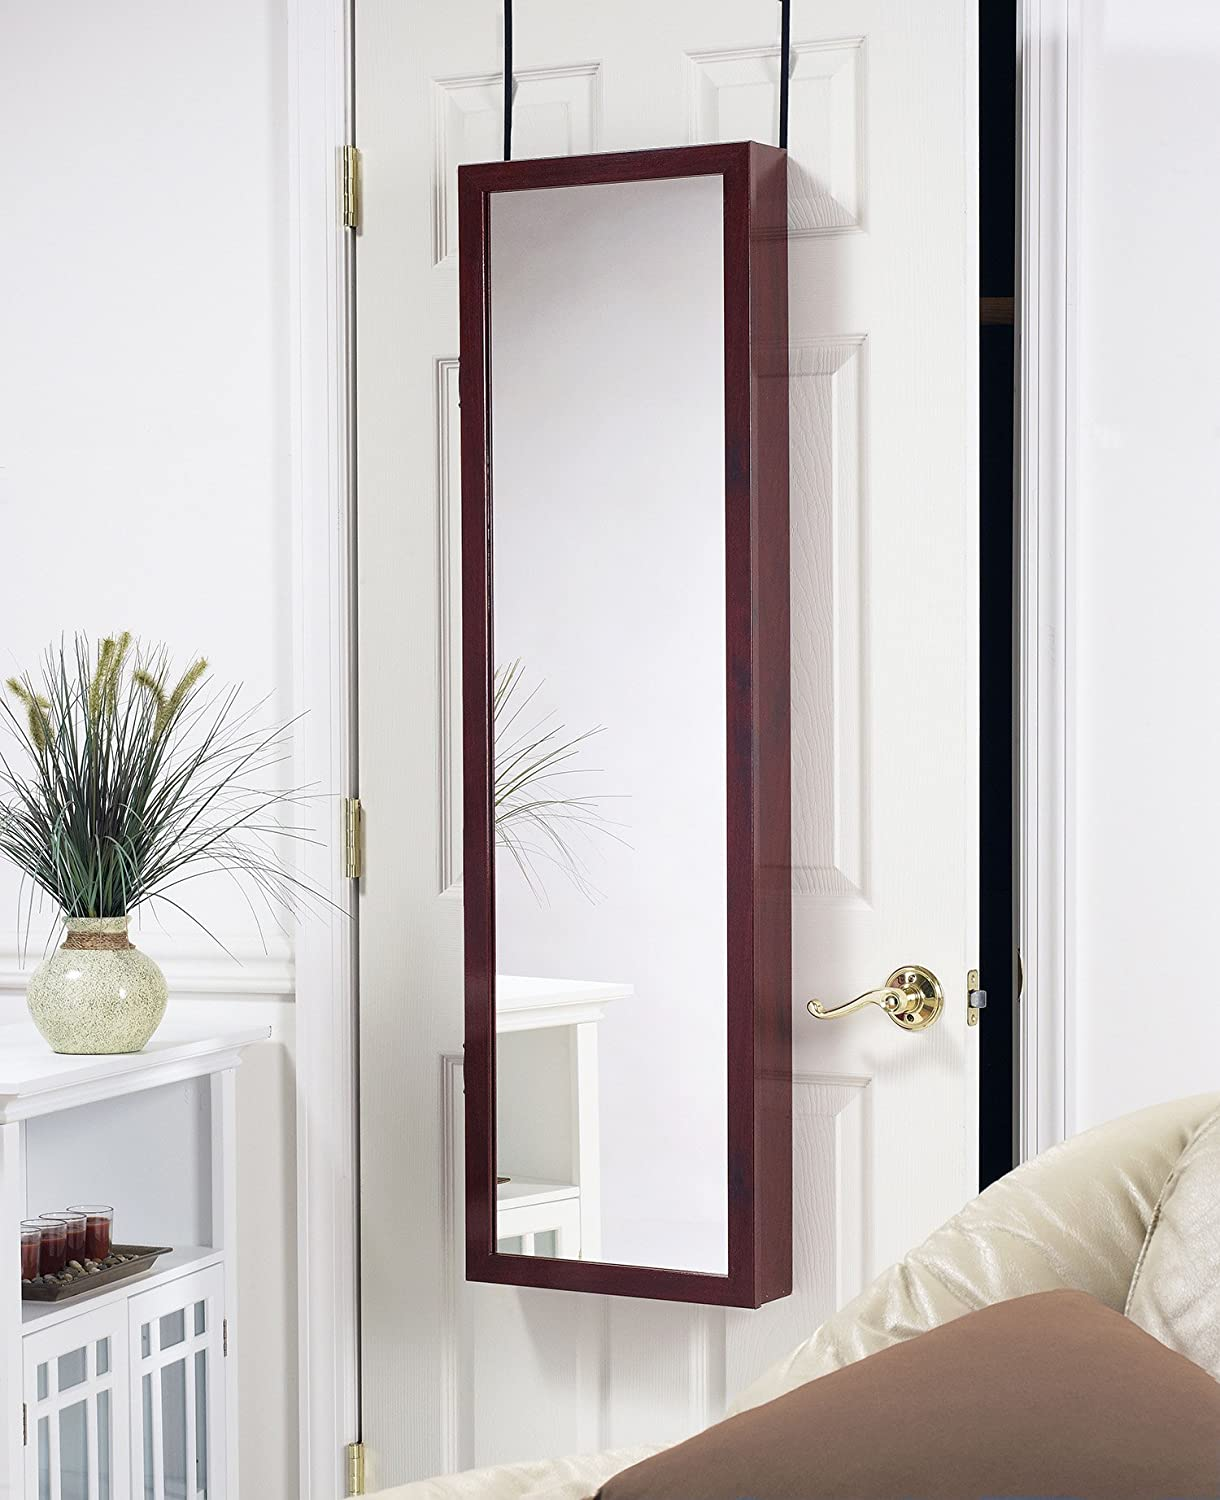 Amazon.com: Plaza Astoria Over The Door/Wall-Mount Jewelry Armoire with Full Length Mirror Lined Storage Interior Vanity Mirror Cherry: Home \u0026 Kitchen & Amazon.com: Plaza Astoria Over The Door/Wall-Mount Jewelry Armoire ... Pezcame.Com